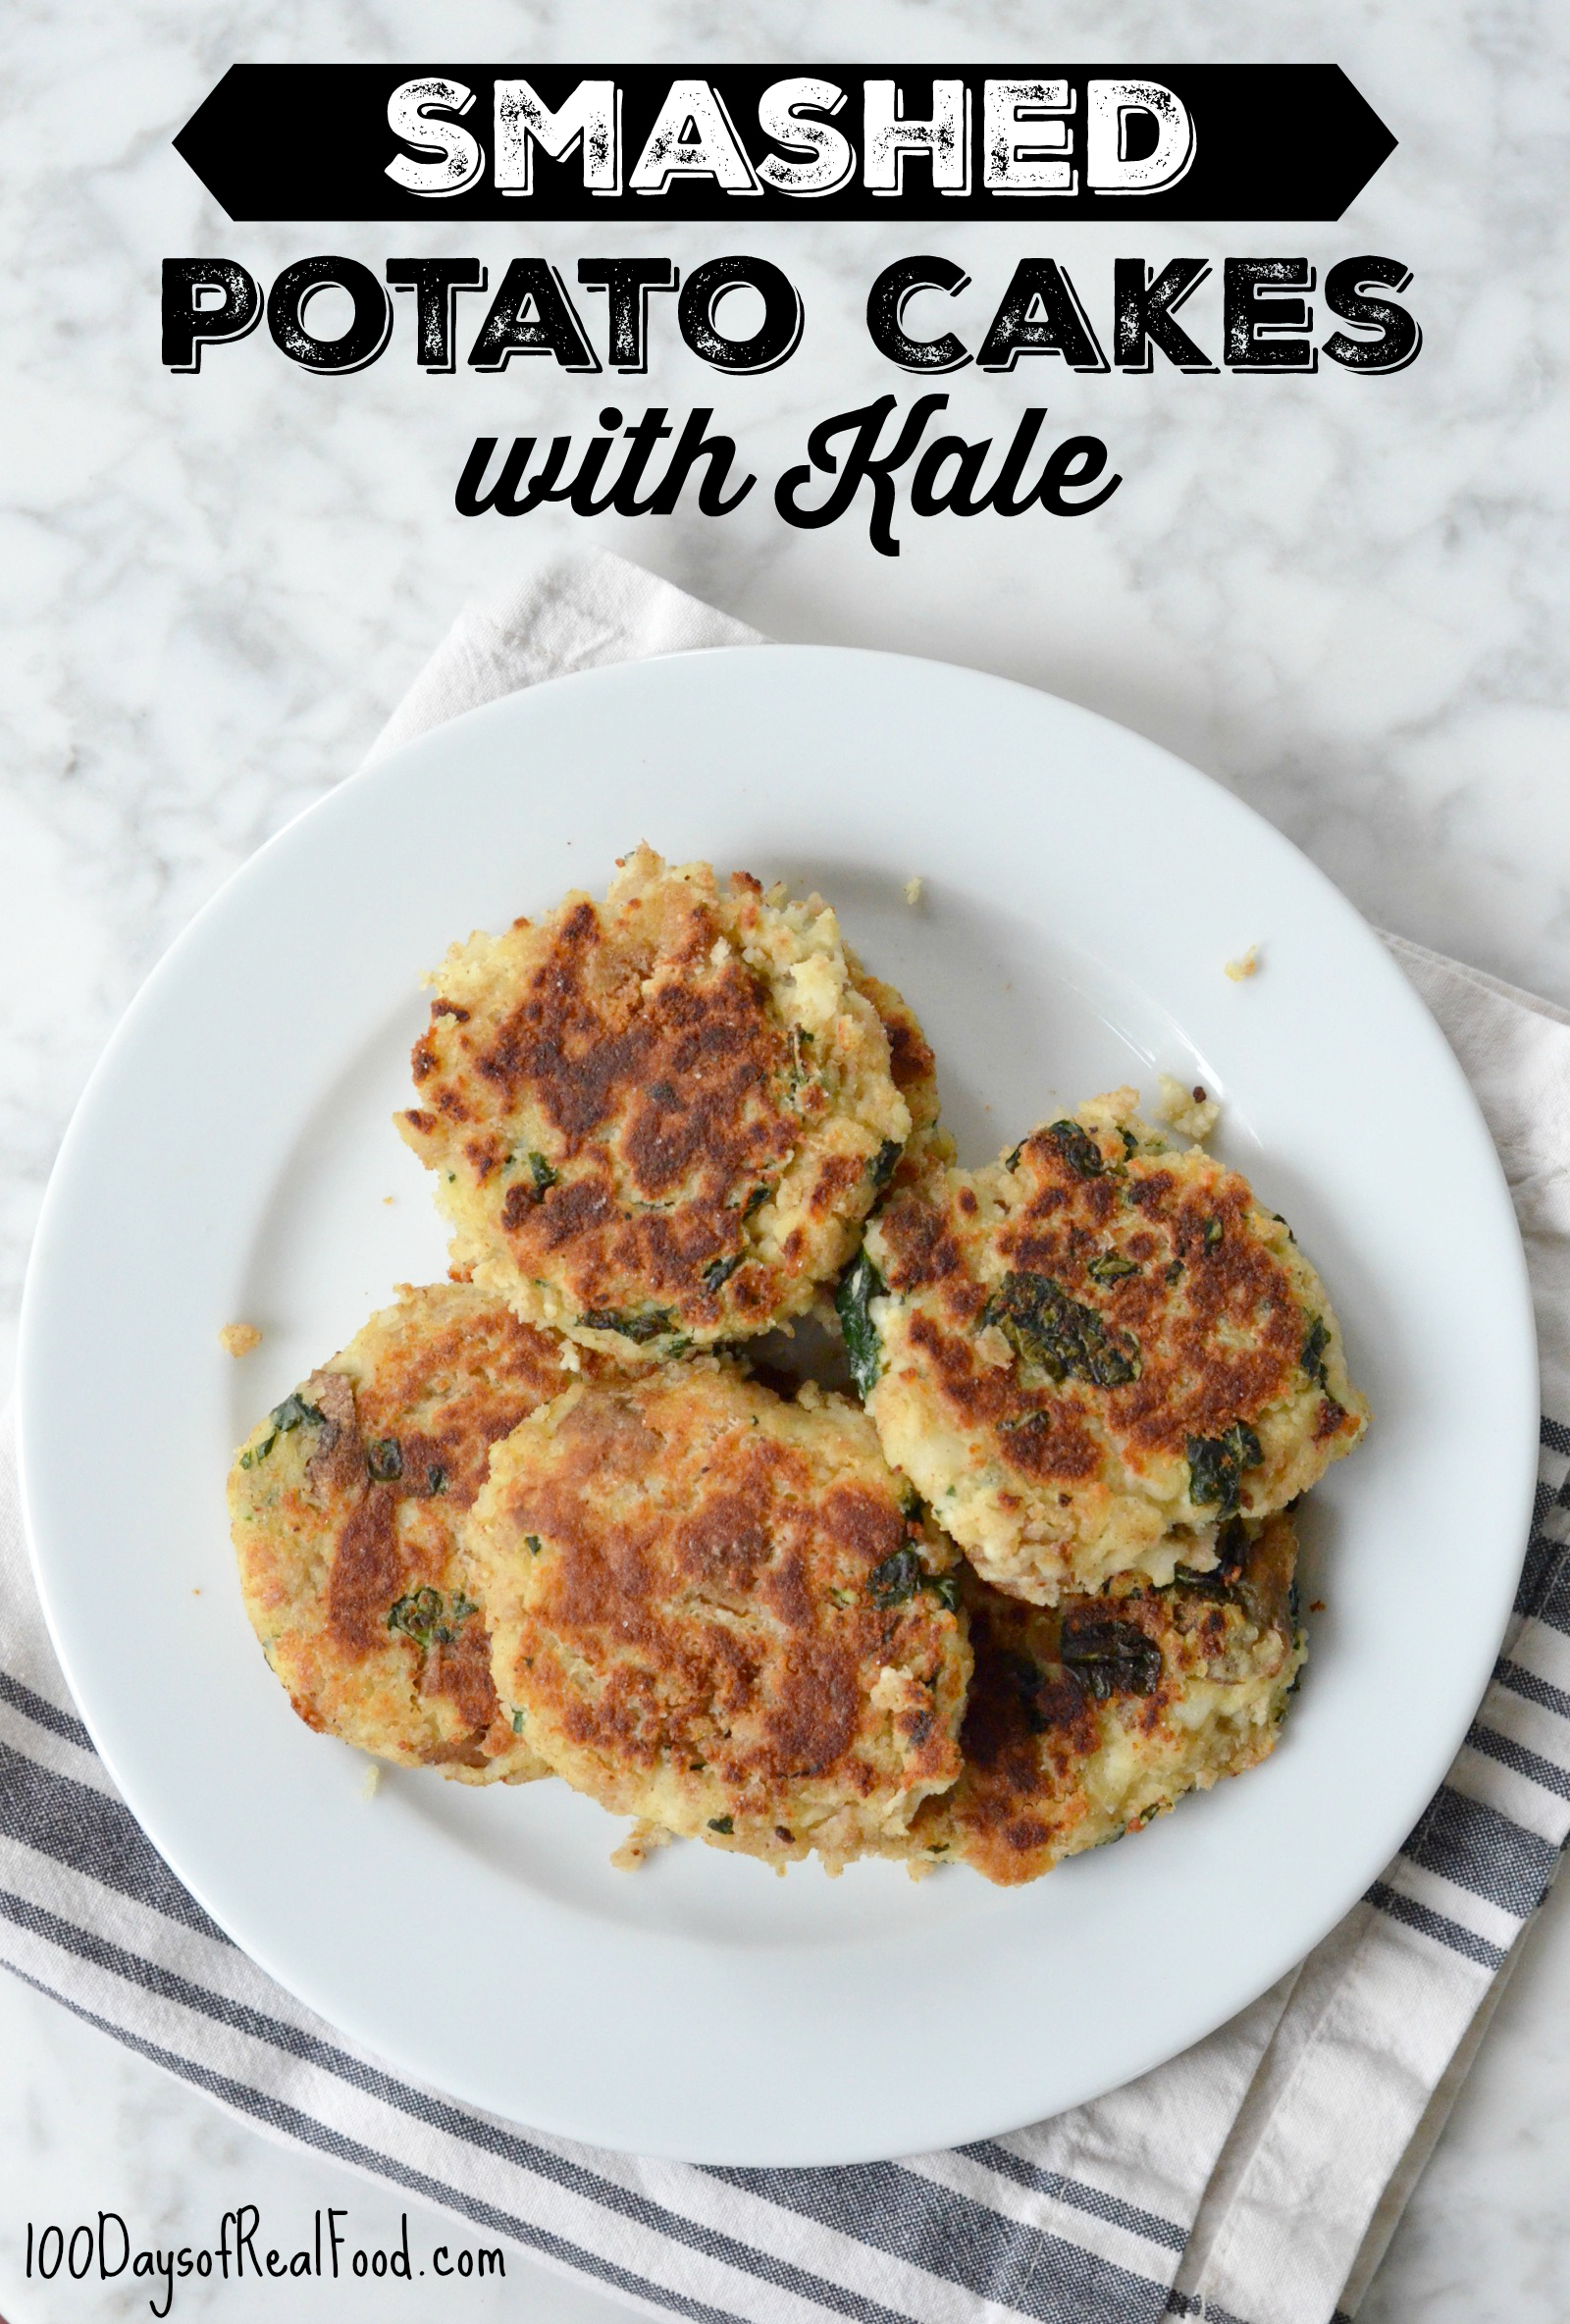 Smashed Potato Cakes with Kale on 100 Days of Real Food